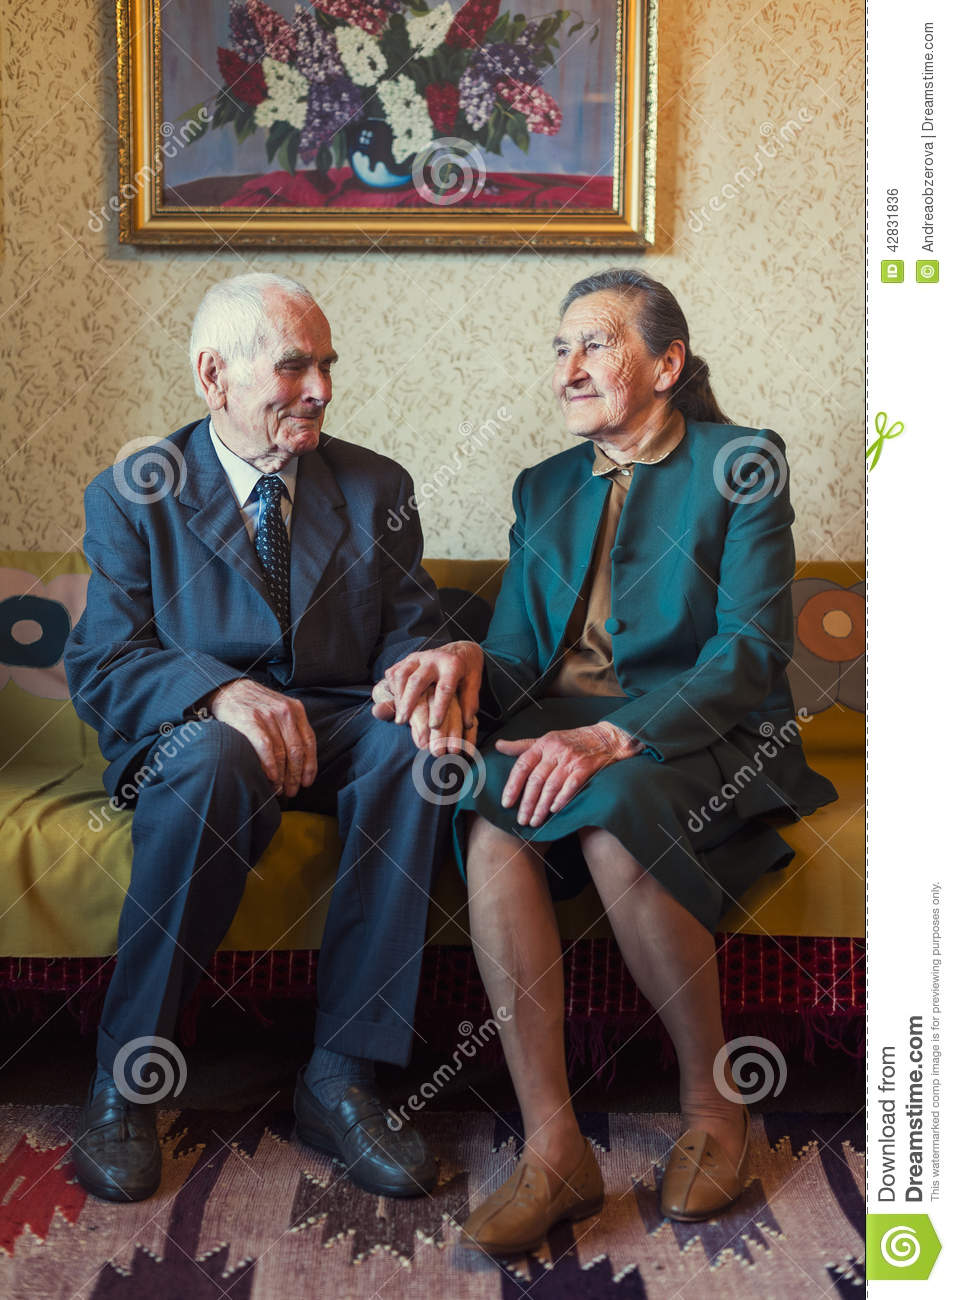 Beautiful Cute House Plans #1: Cute-plus-year-old-married-couple-posing-portrait-their-house-love-forever-concept-42831836.jpg